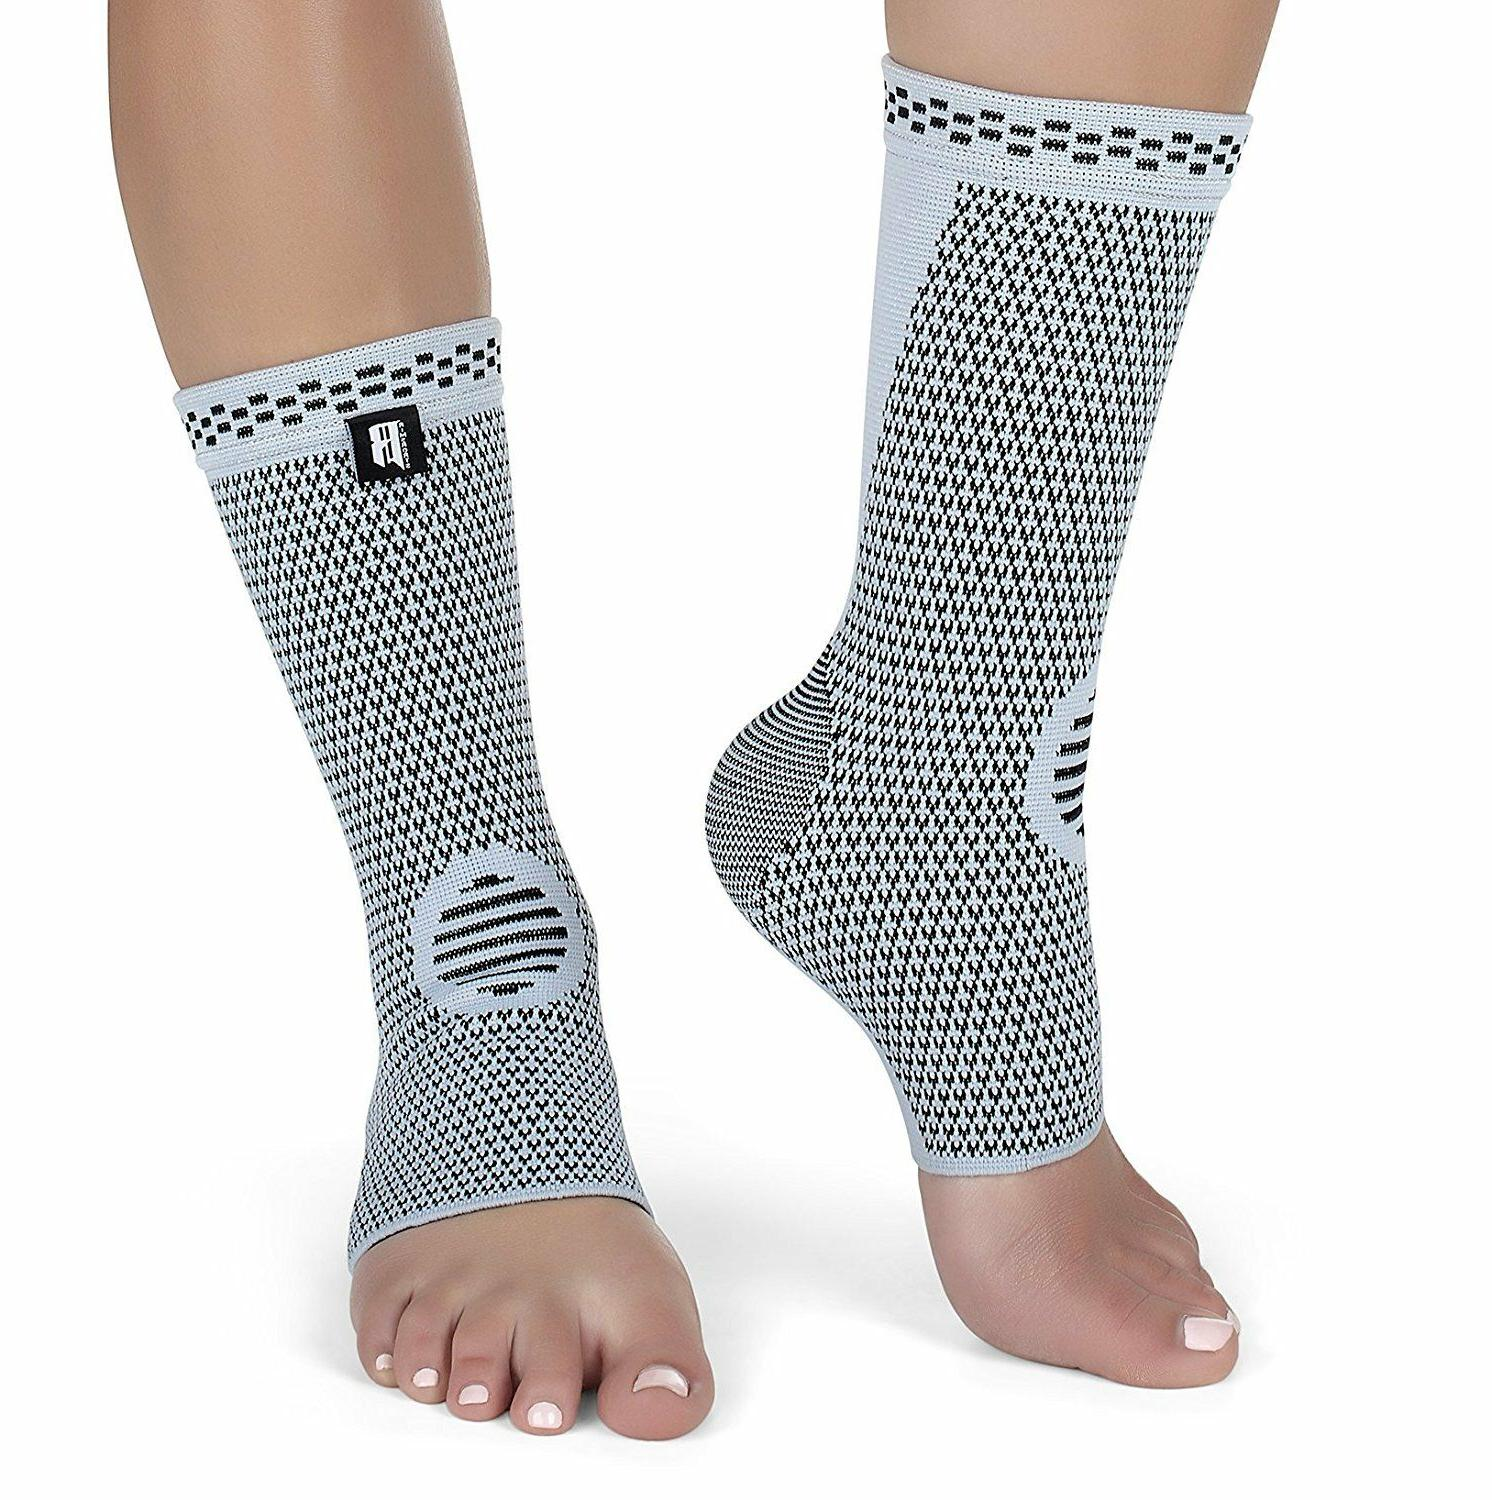 Best Support For Support For Ankle